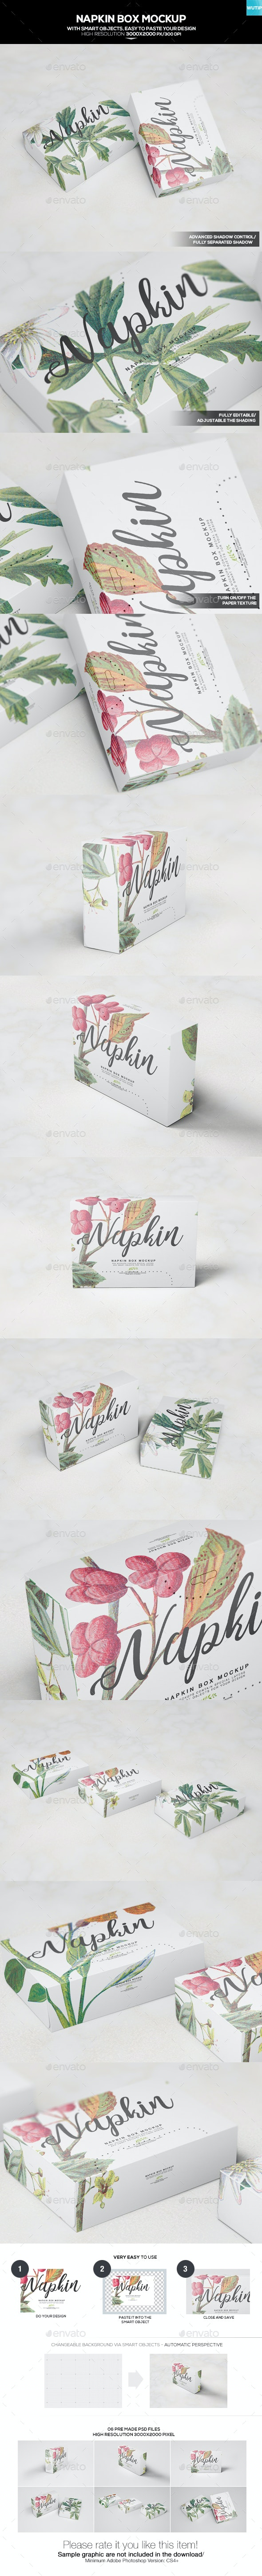 Napkin Box Mockup - Miscellaneous Packaging